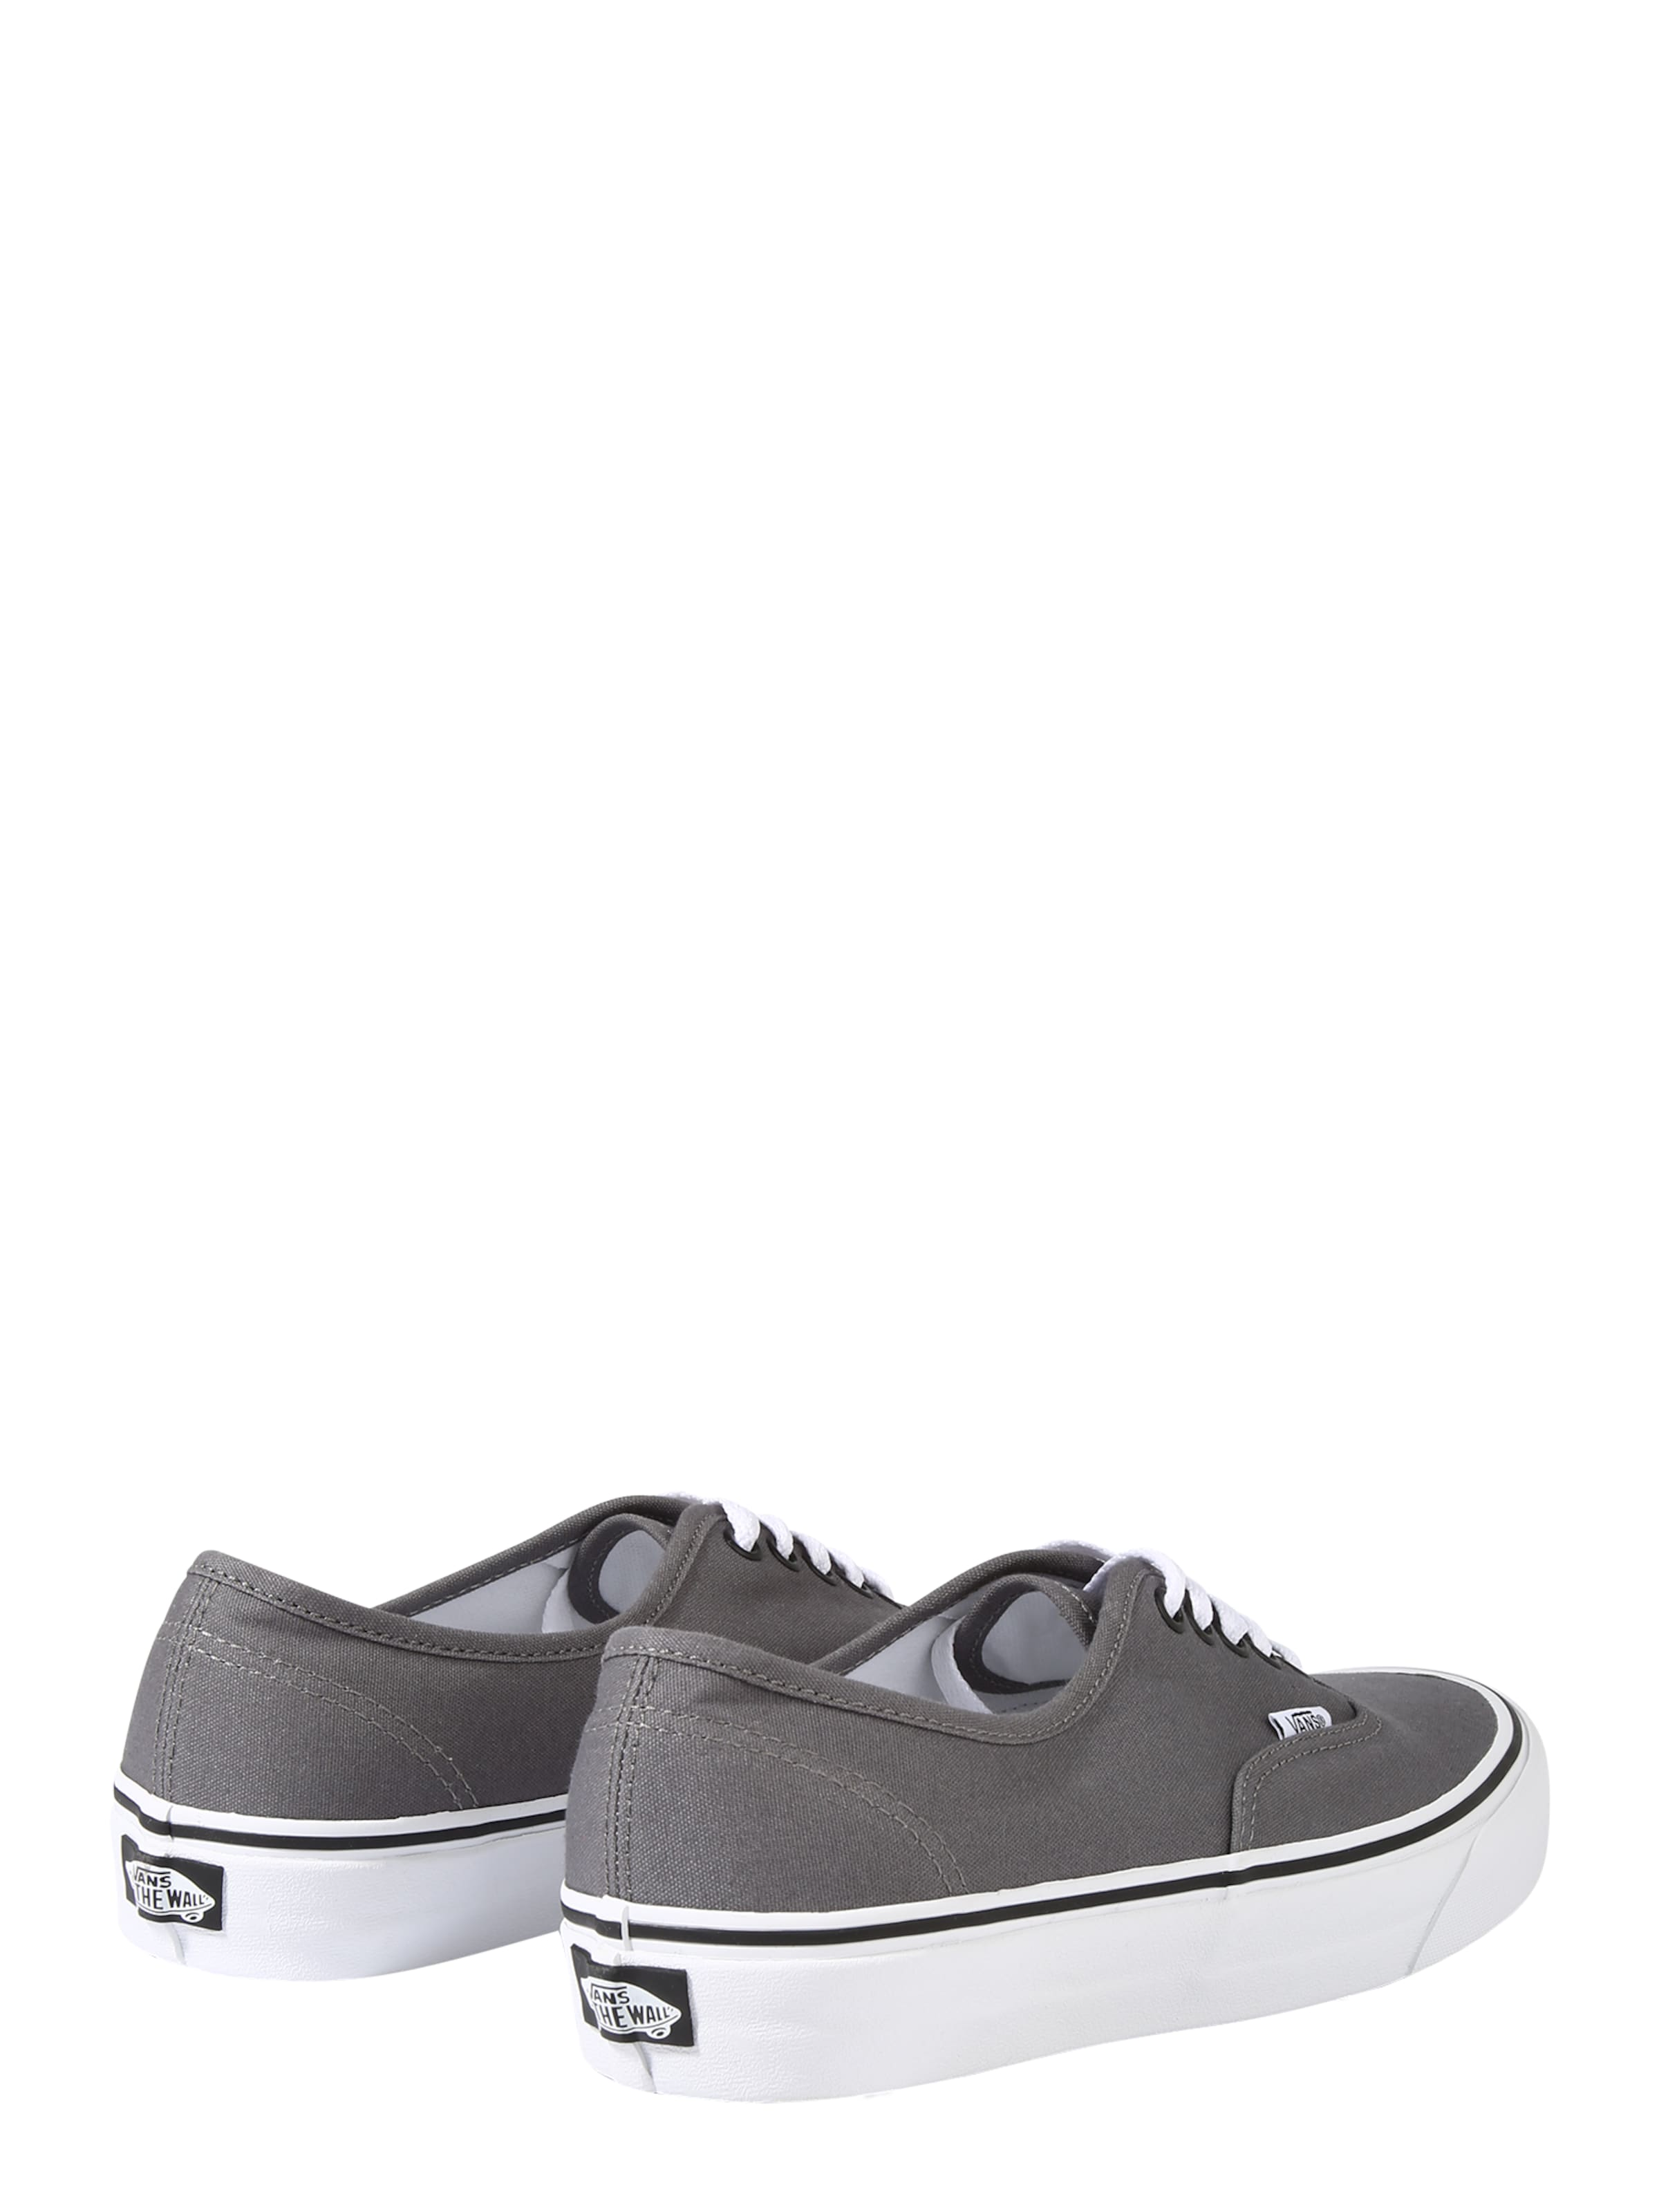 Basses Blanc FoncéNoir En Vans Baskets 'authentic' Gris OPZiukTX